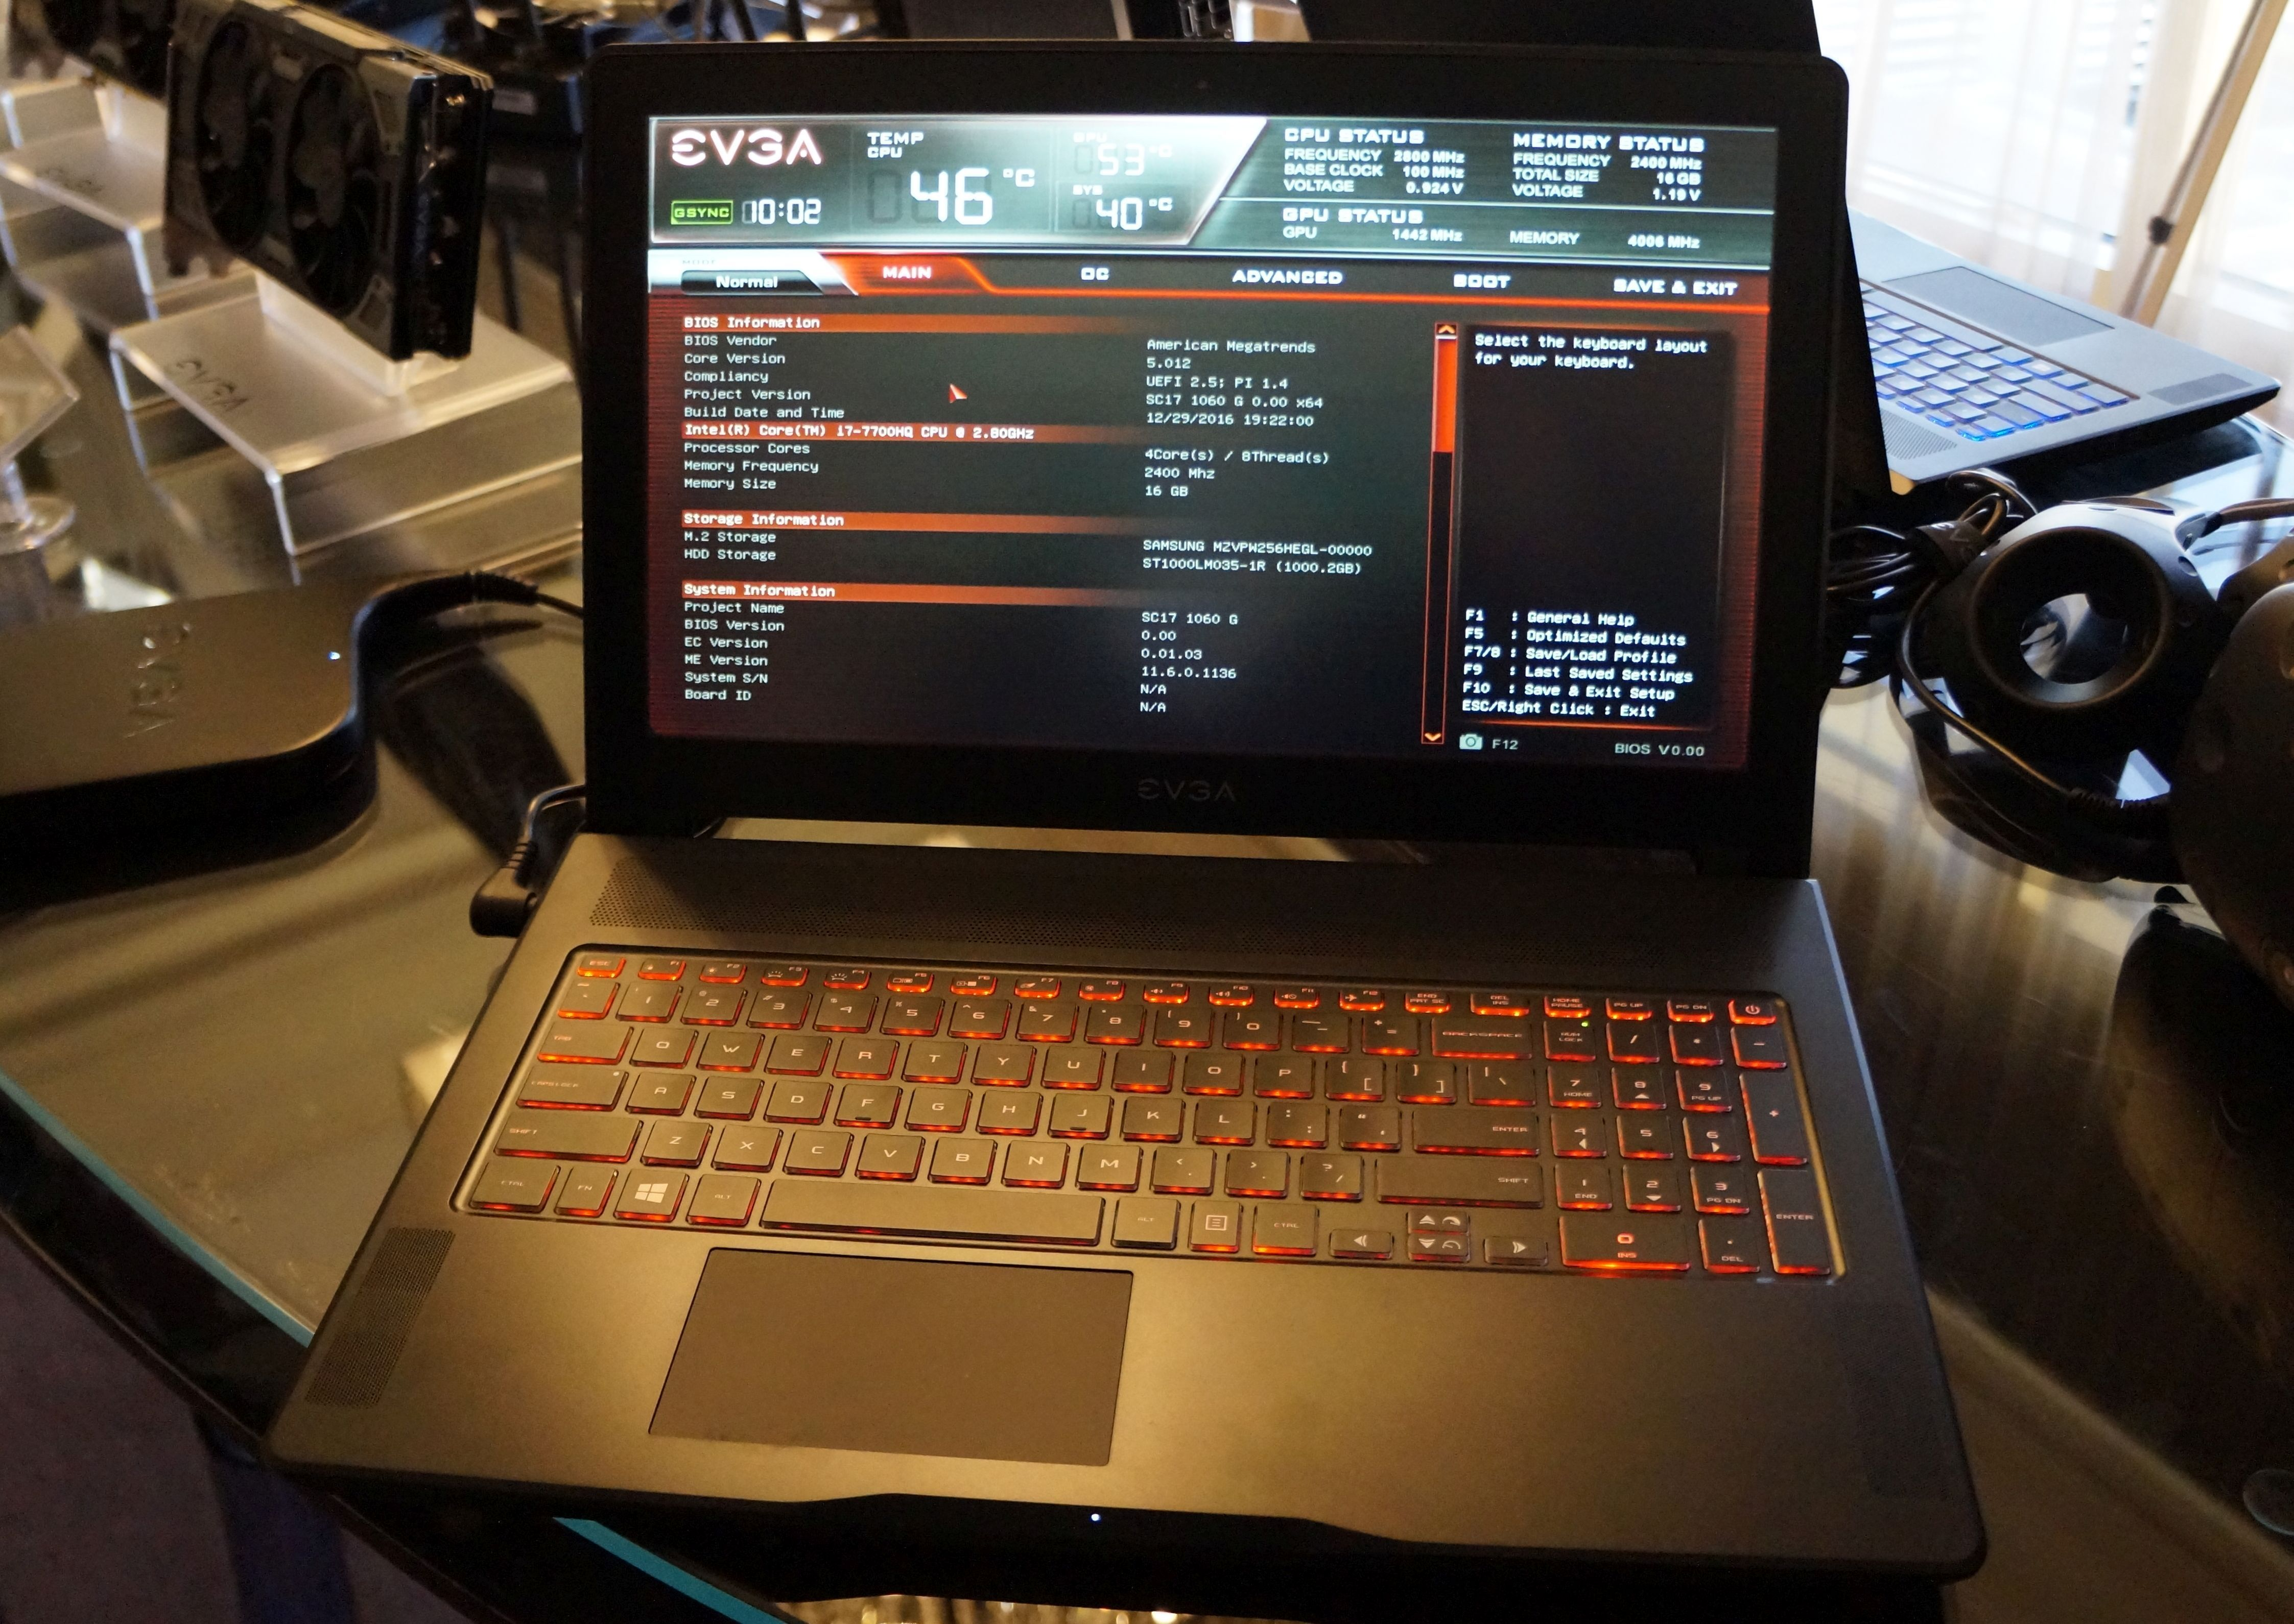 EVGA's SC-15 laptop woos gamers with a glorious 120Hz G-Sync display